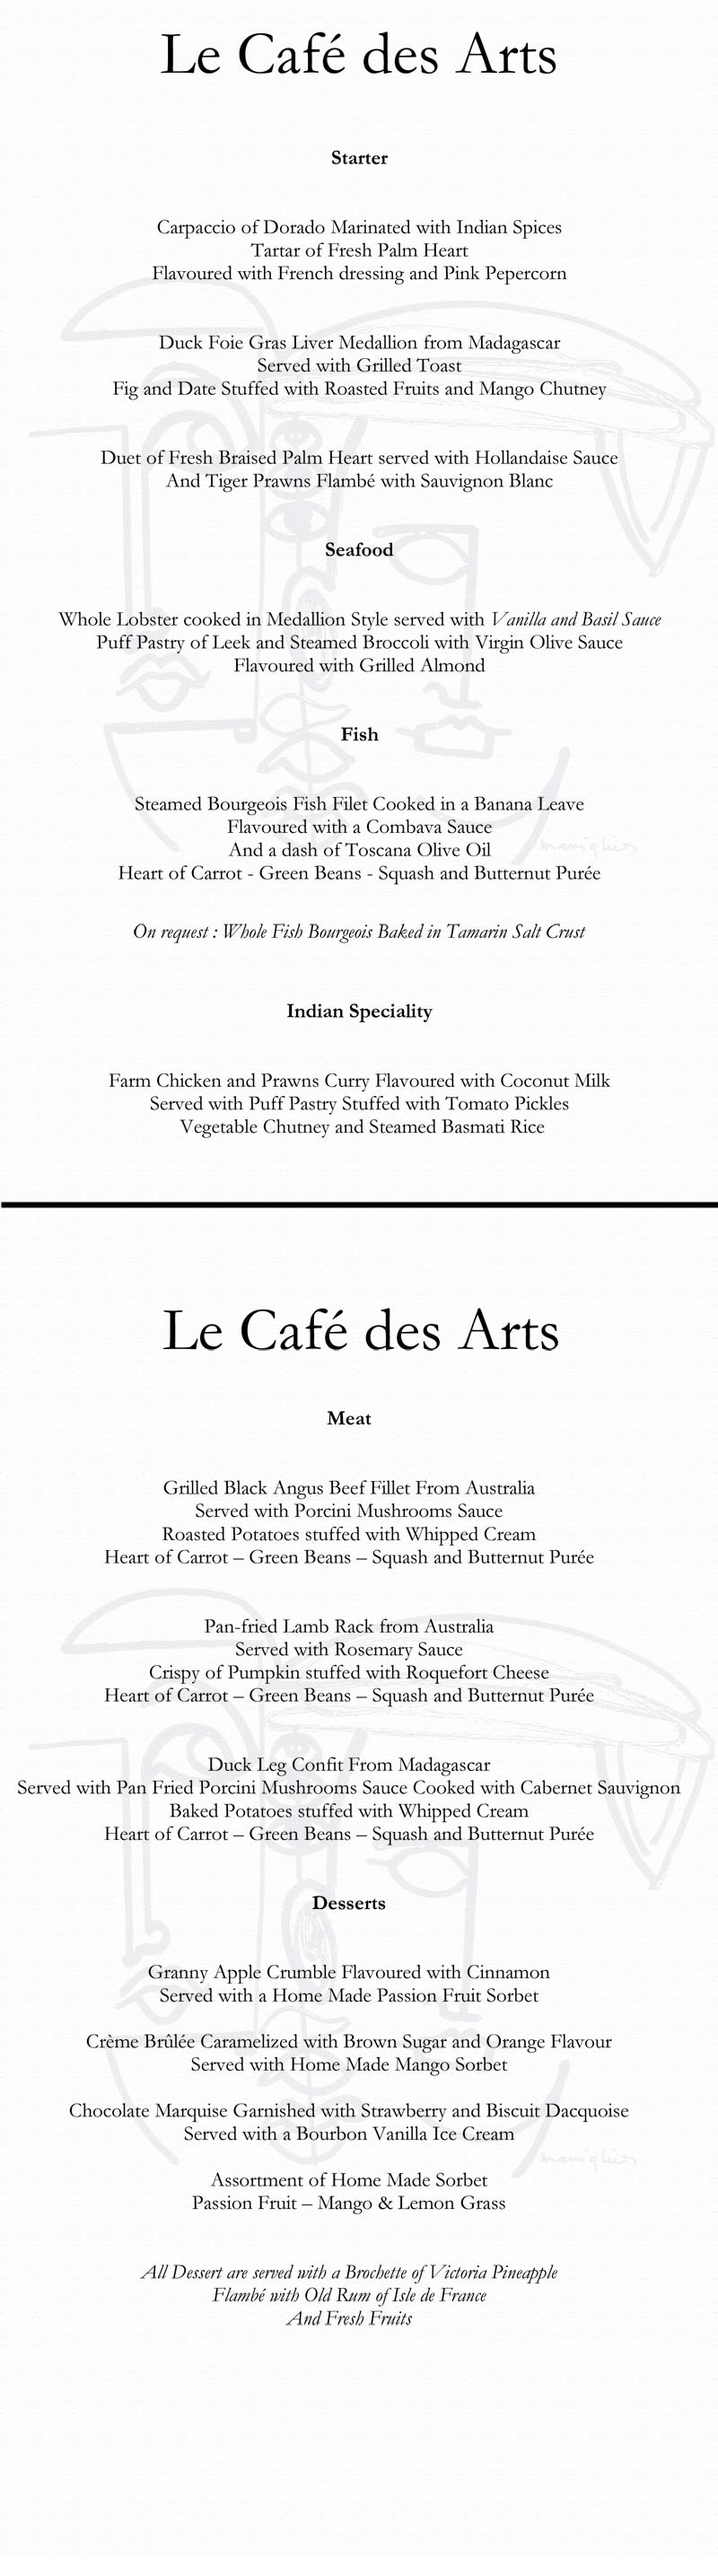 Le Cafe des Arts Restaurant Menu